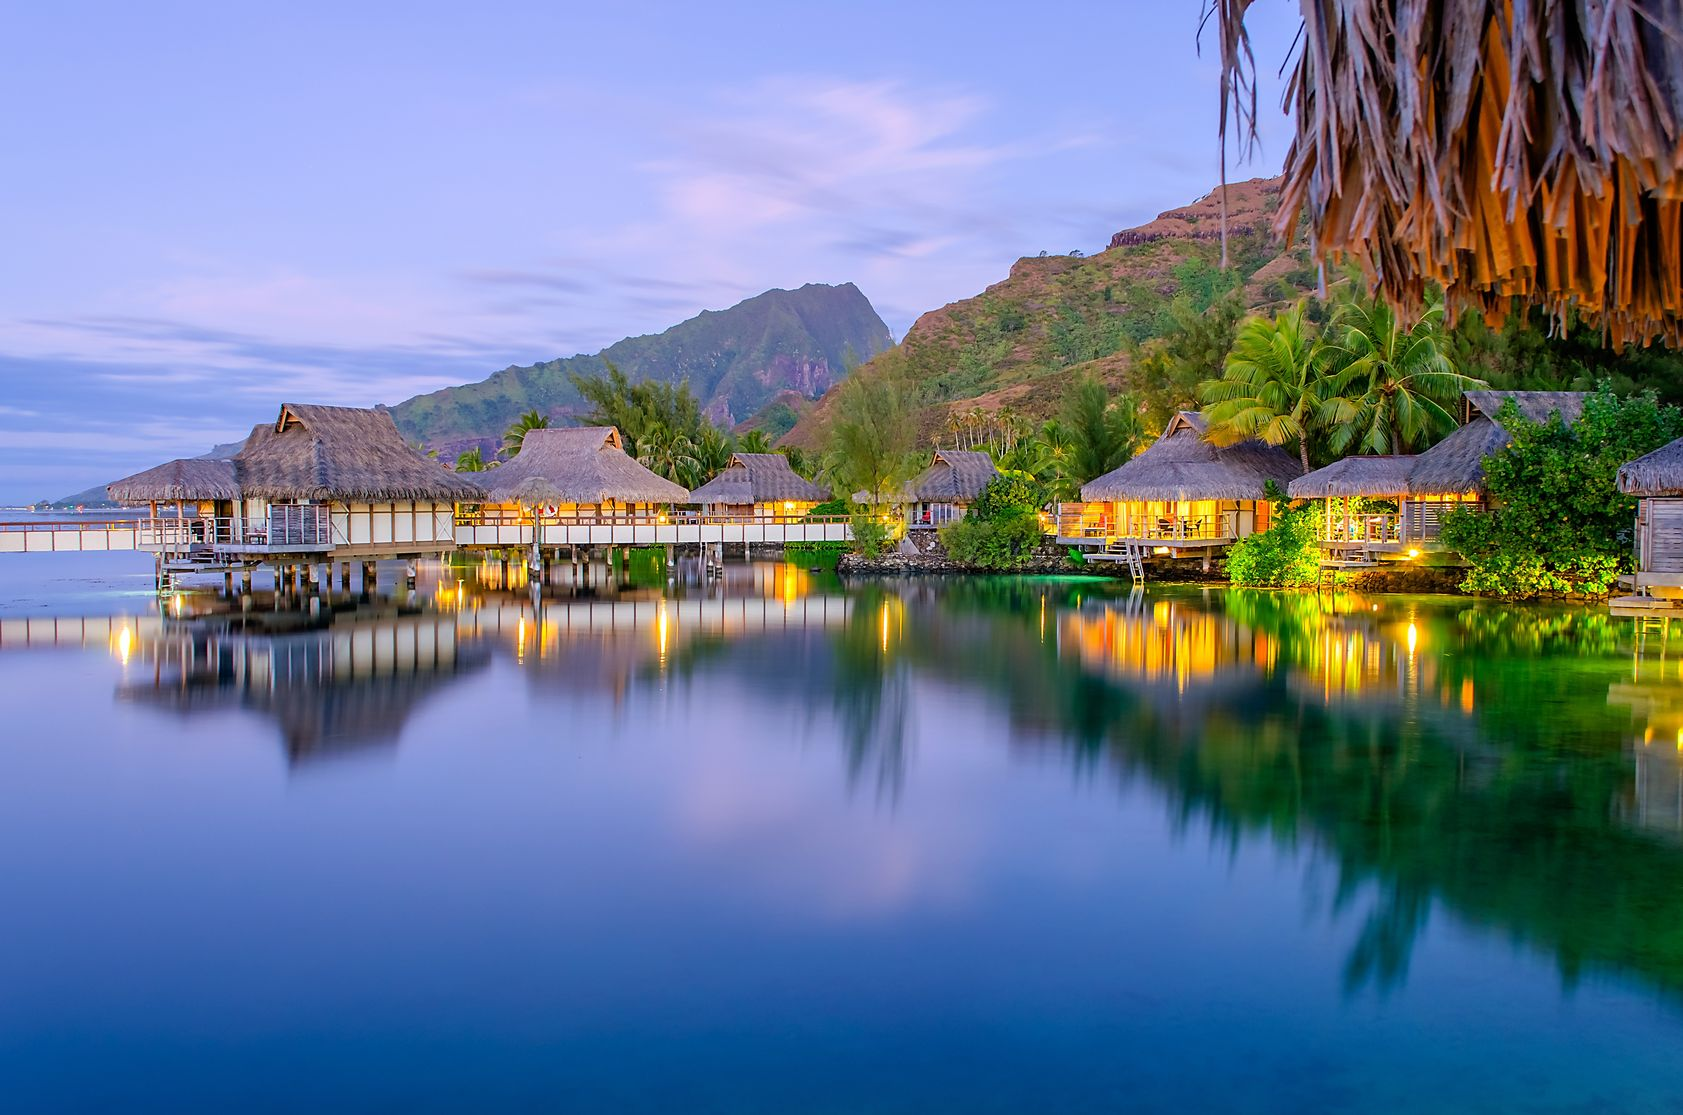 FTG-Overwater-Bungalows-at-dusk-French-Polynesia